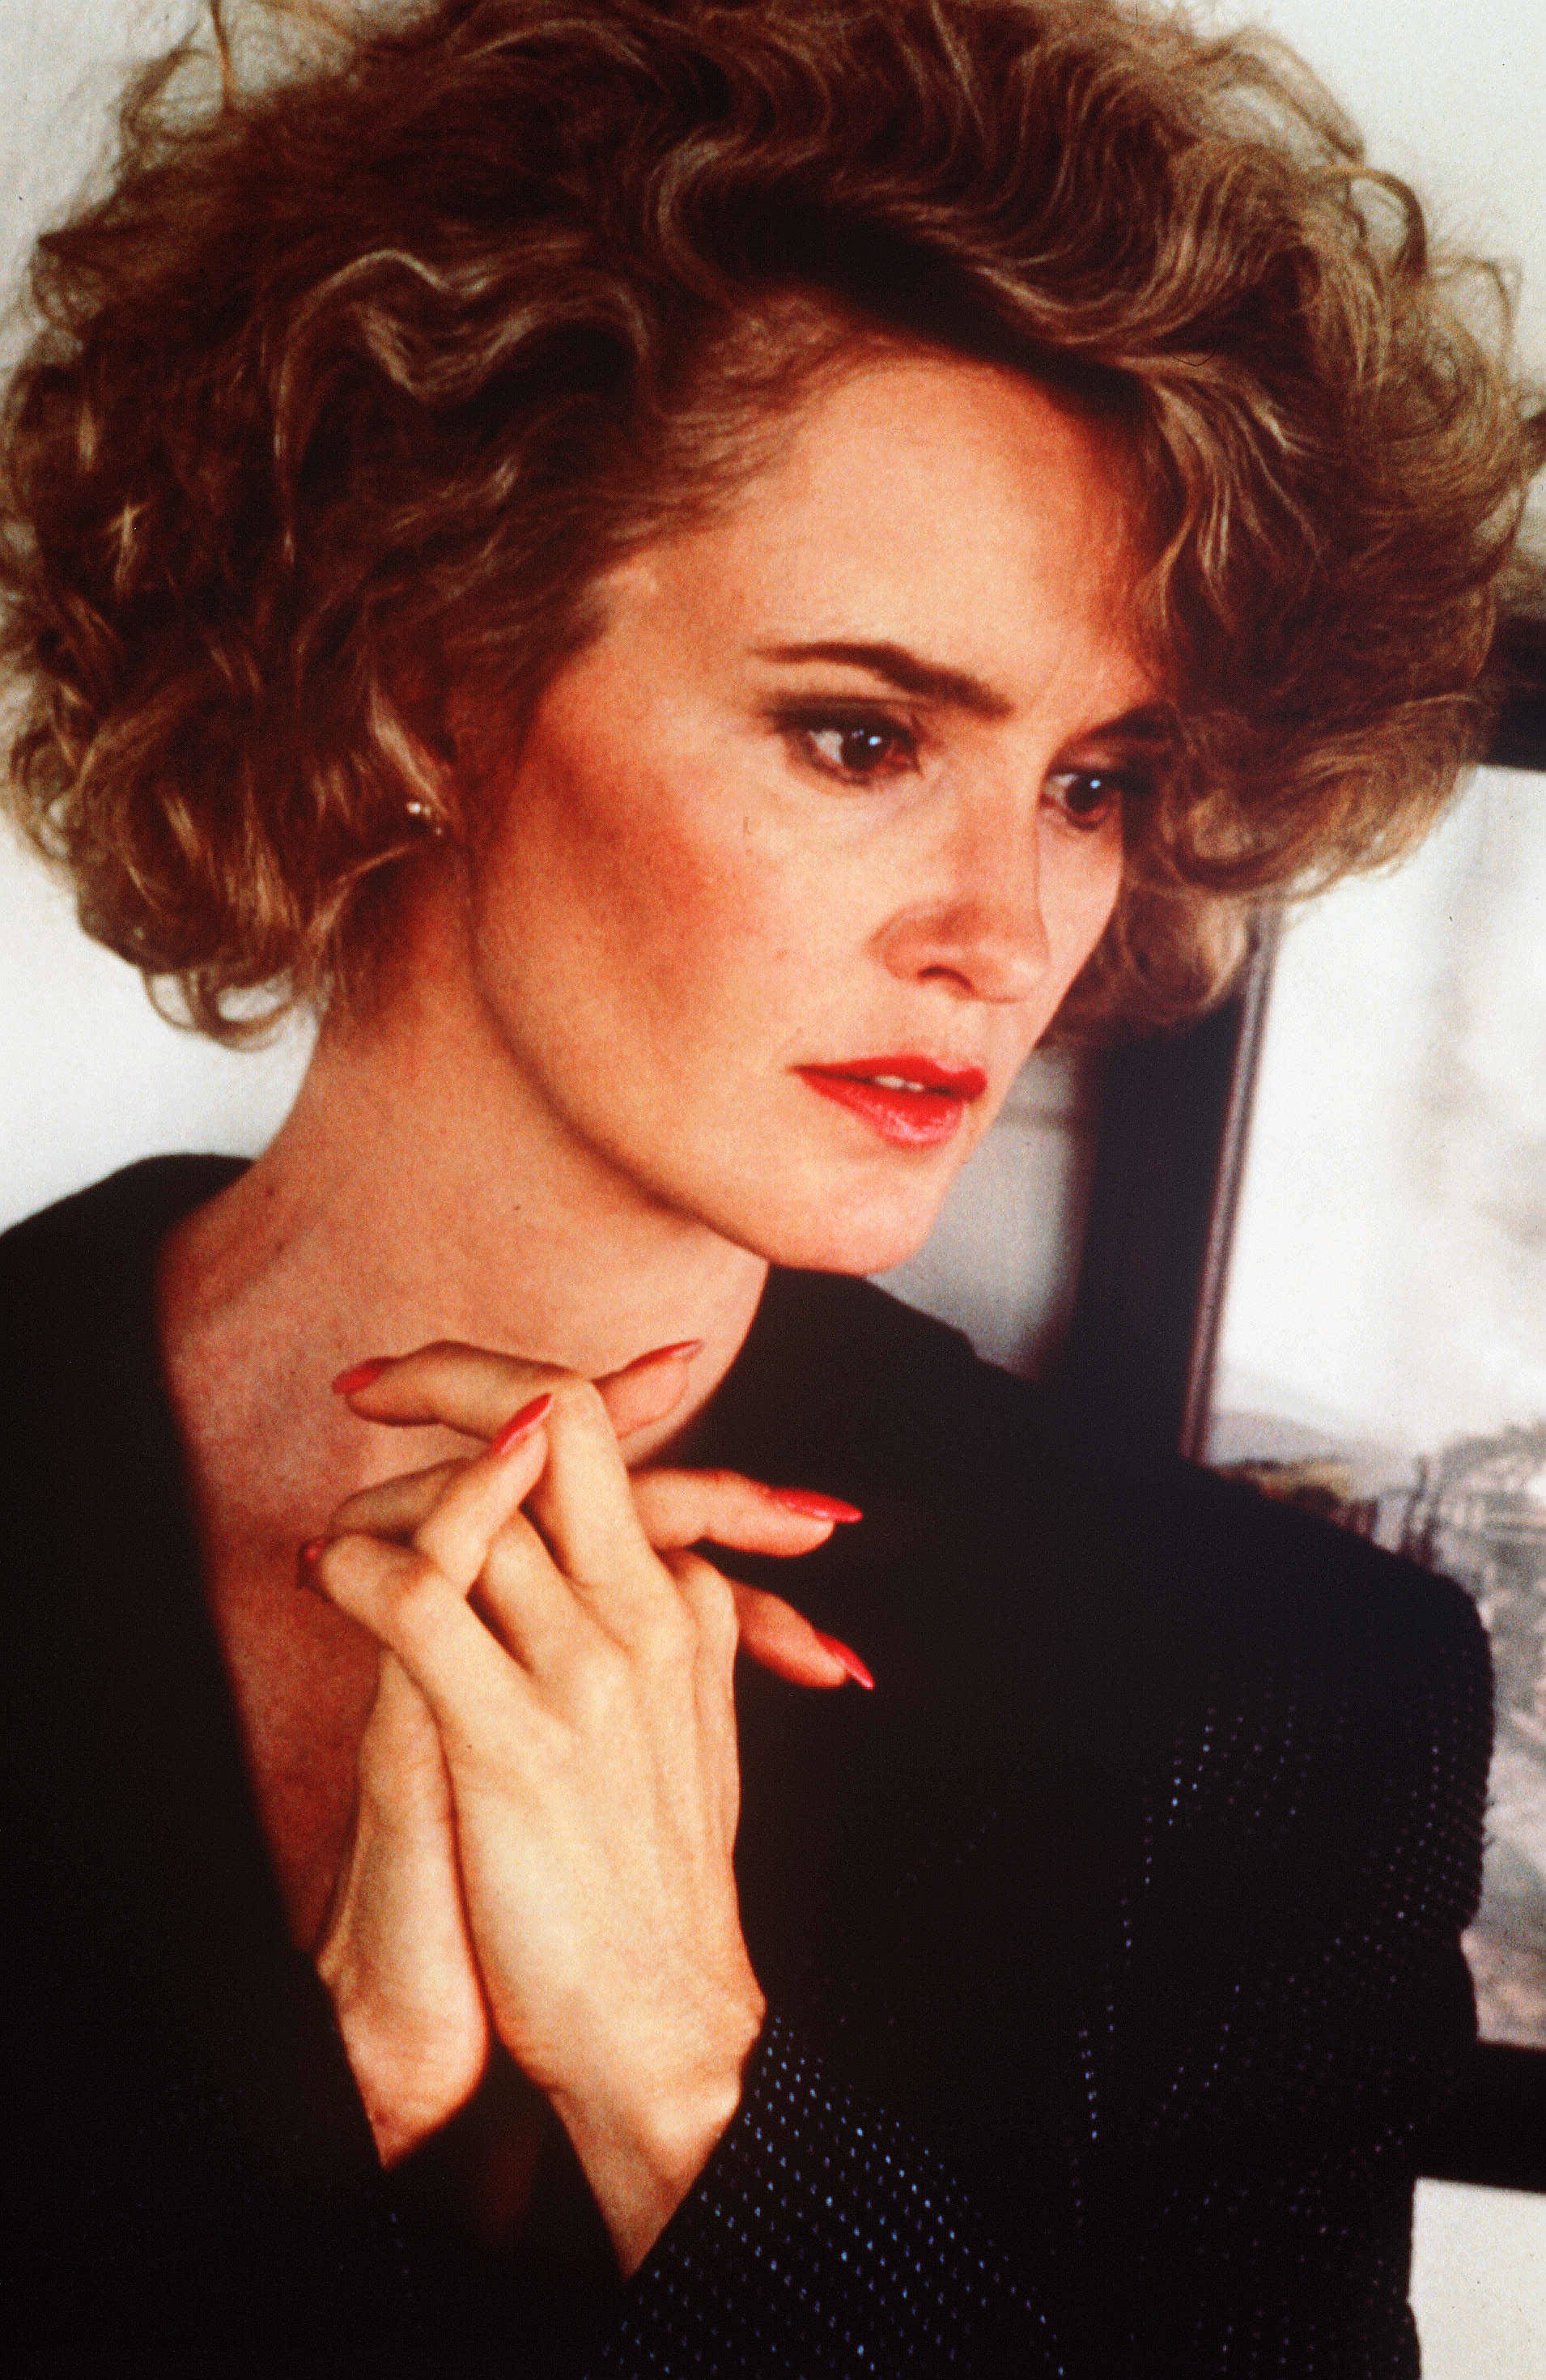 Jessica Lange appears in an undated photo from early in her career.